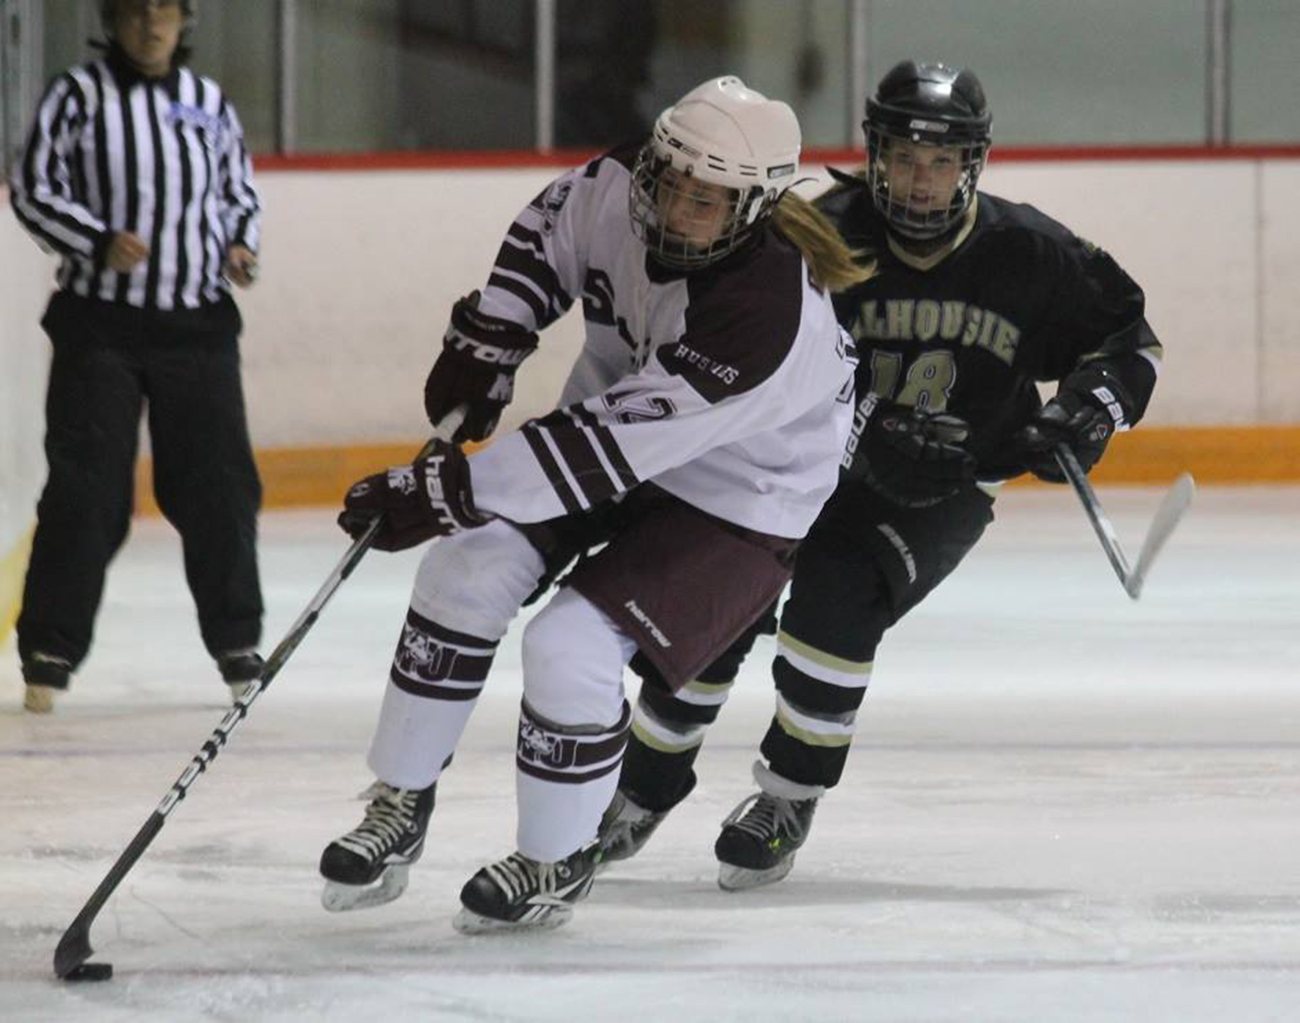 Tigers women's hockey is back on the ice (photo by Richard Lafortune)